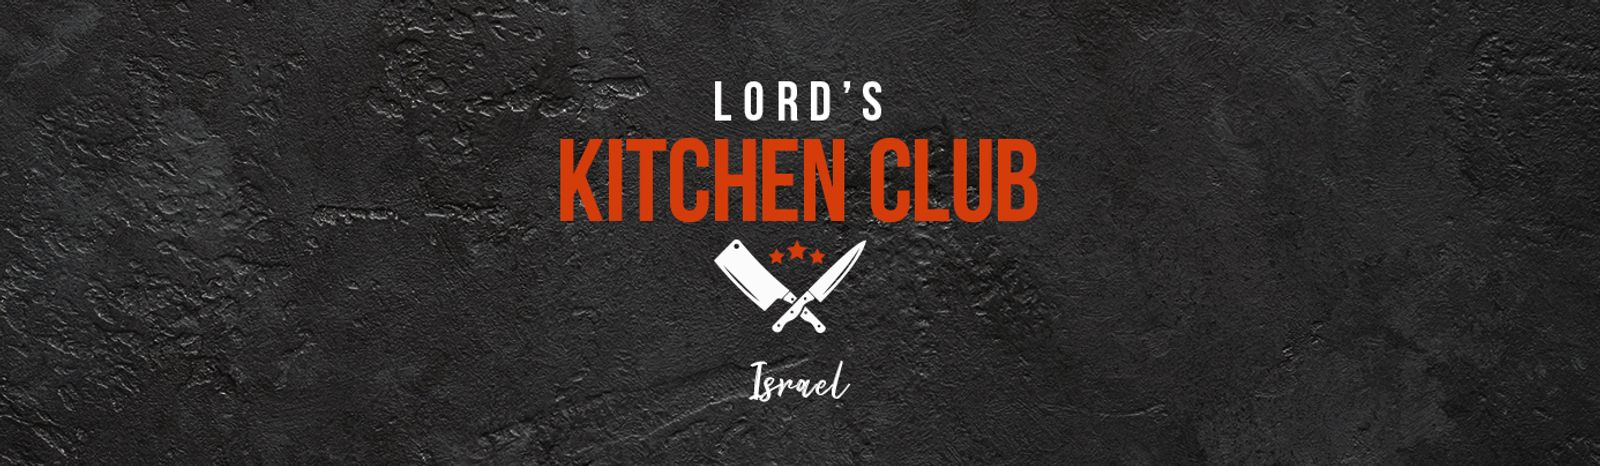 Lord's Kitchen Club - Israel